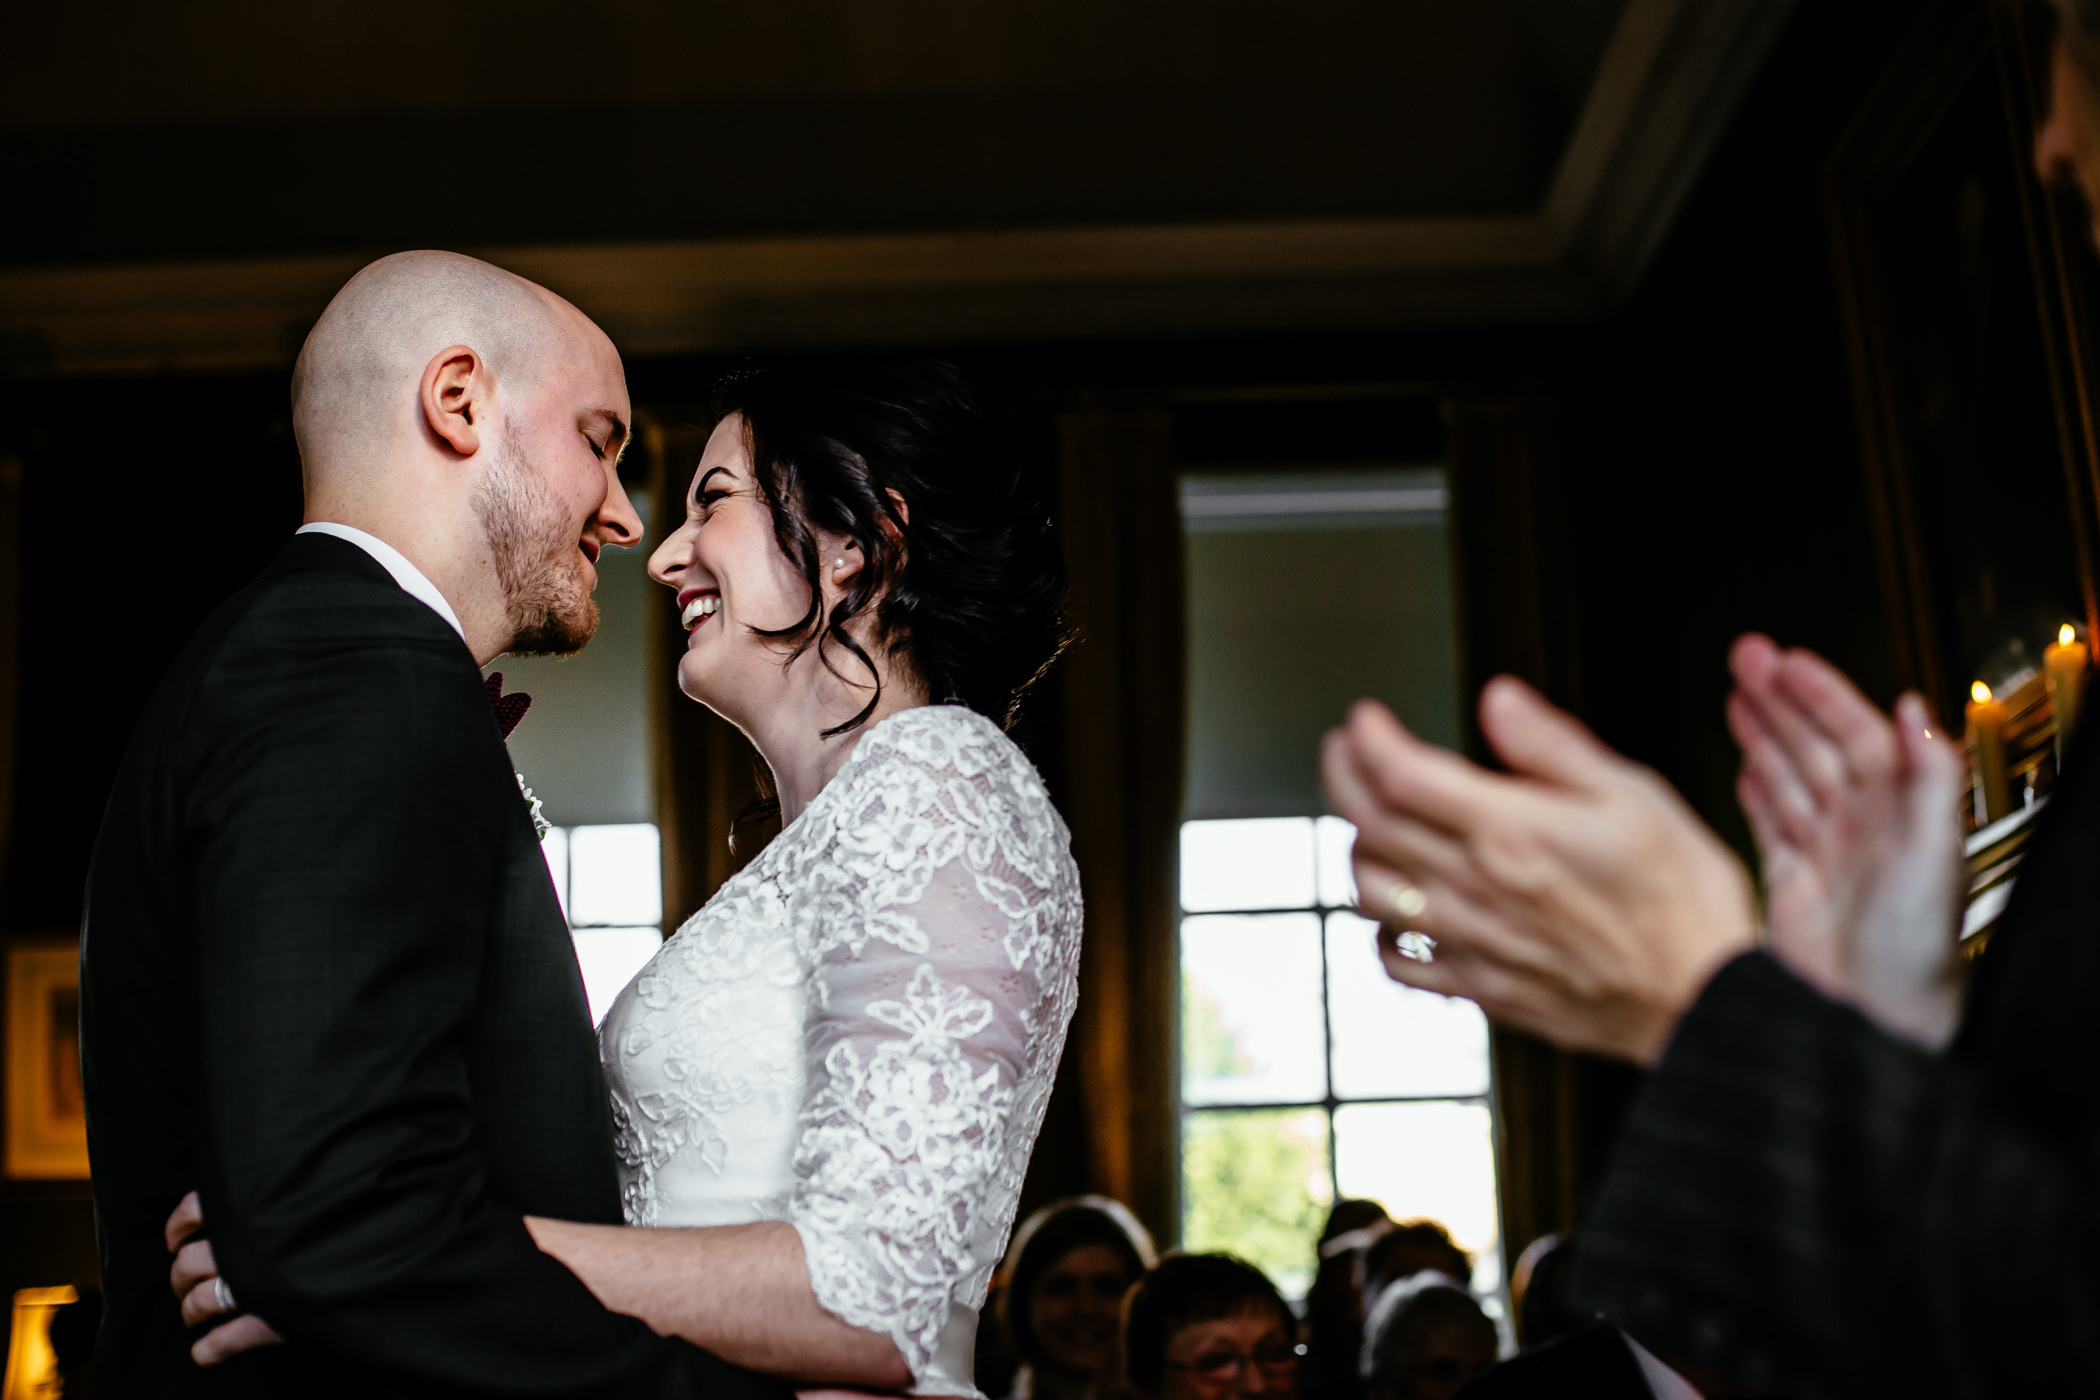 Georgie & steve - Sansom photography Grays Court York Wedding-16